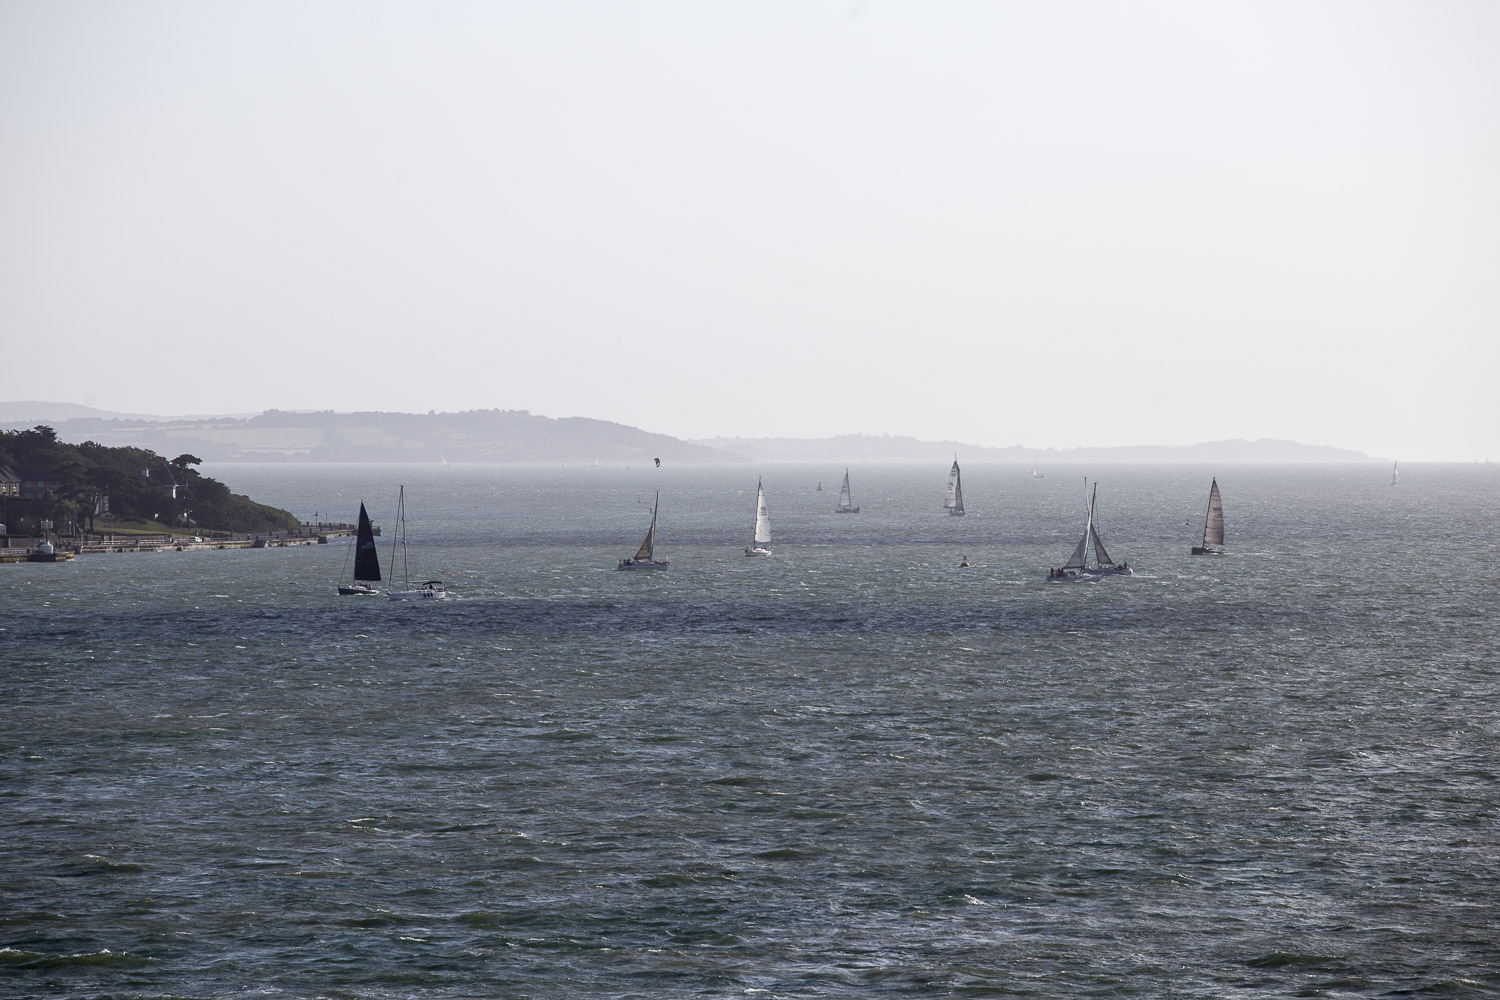 Cowes_4377-2